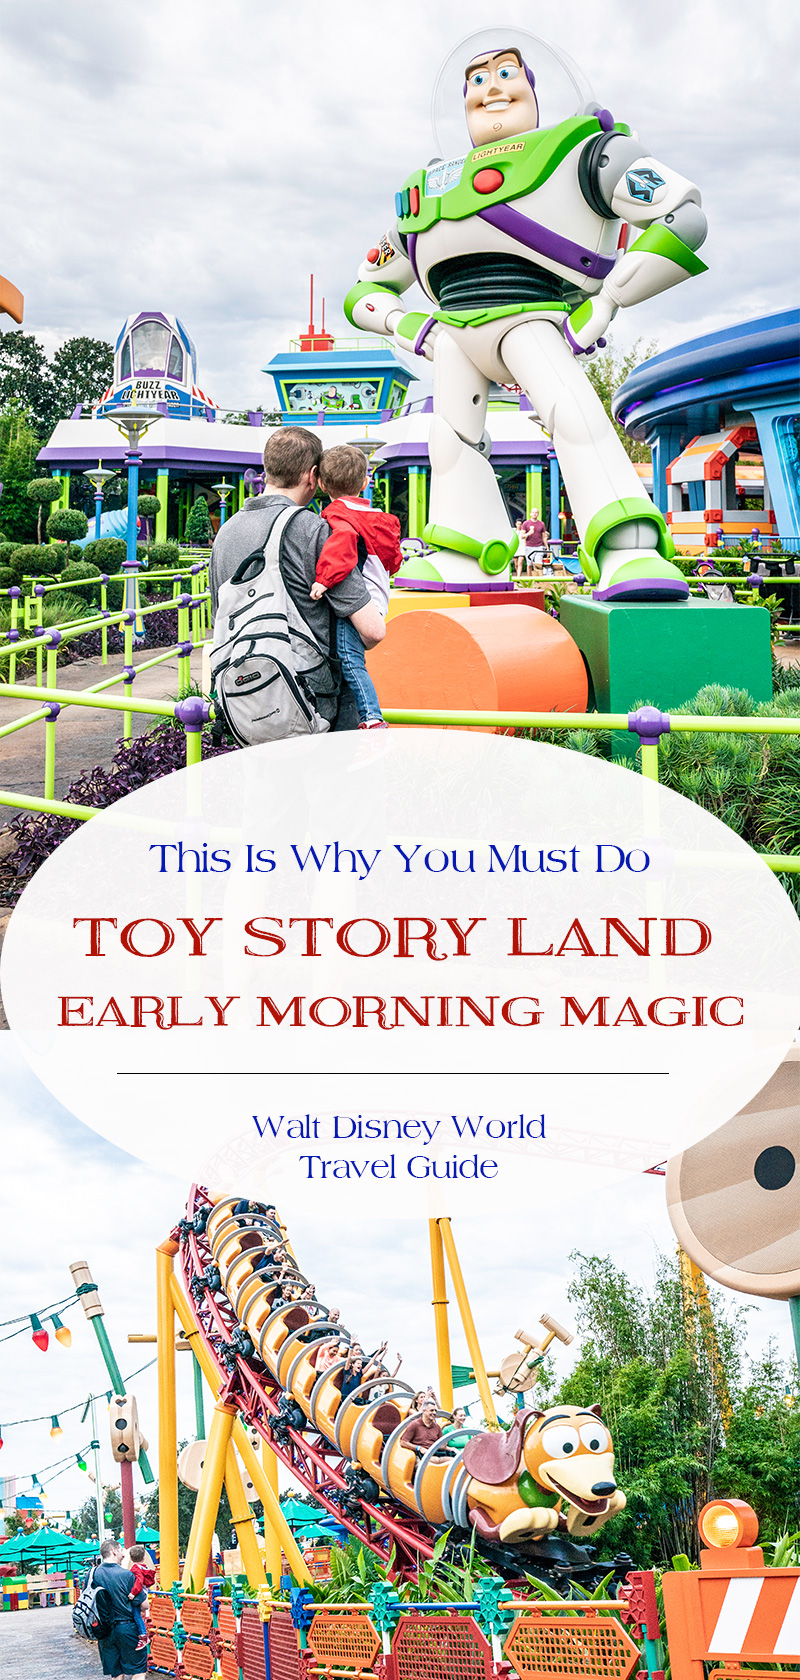 This-Is-Why-You-Must-Do-Toy-Story-Land-Early-Morning-Magic-Disney-Travel-Guide